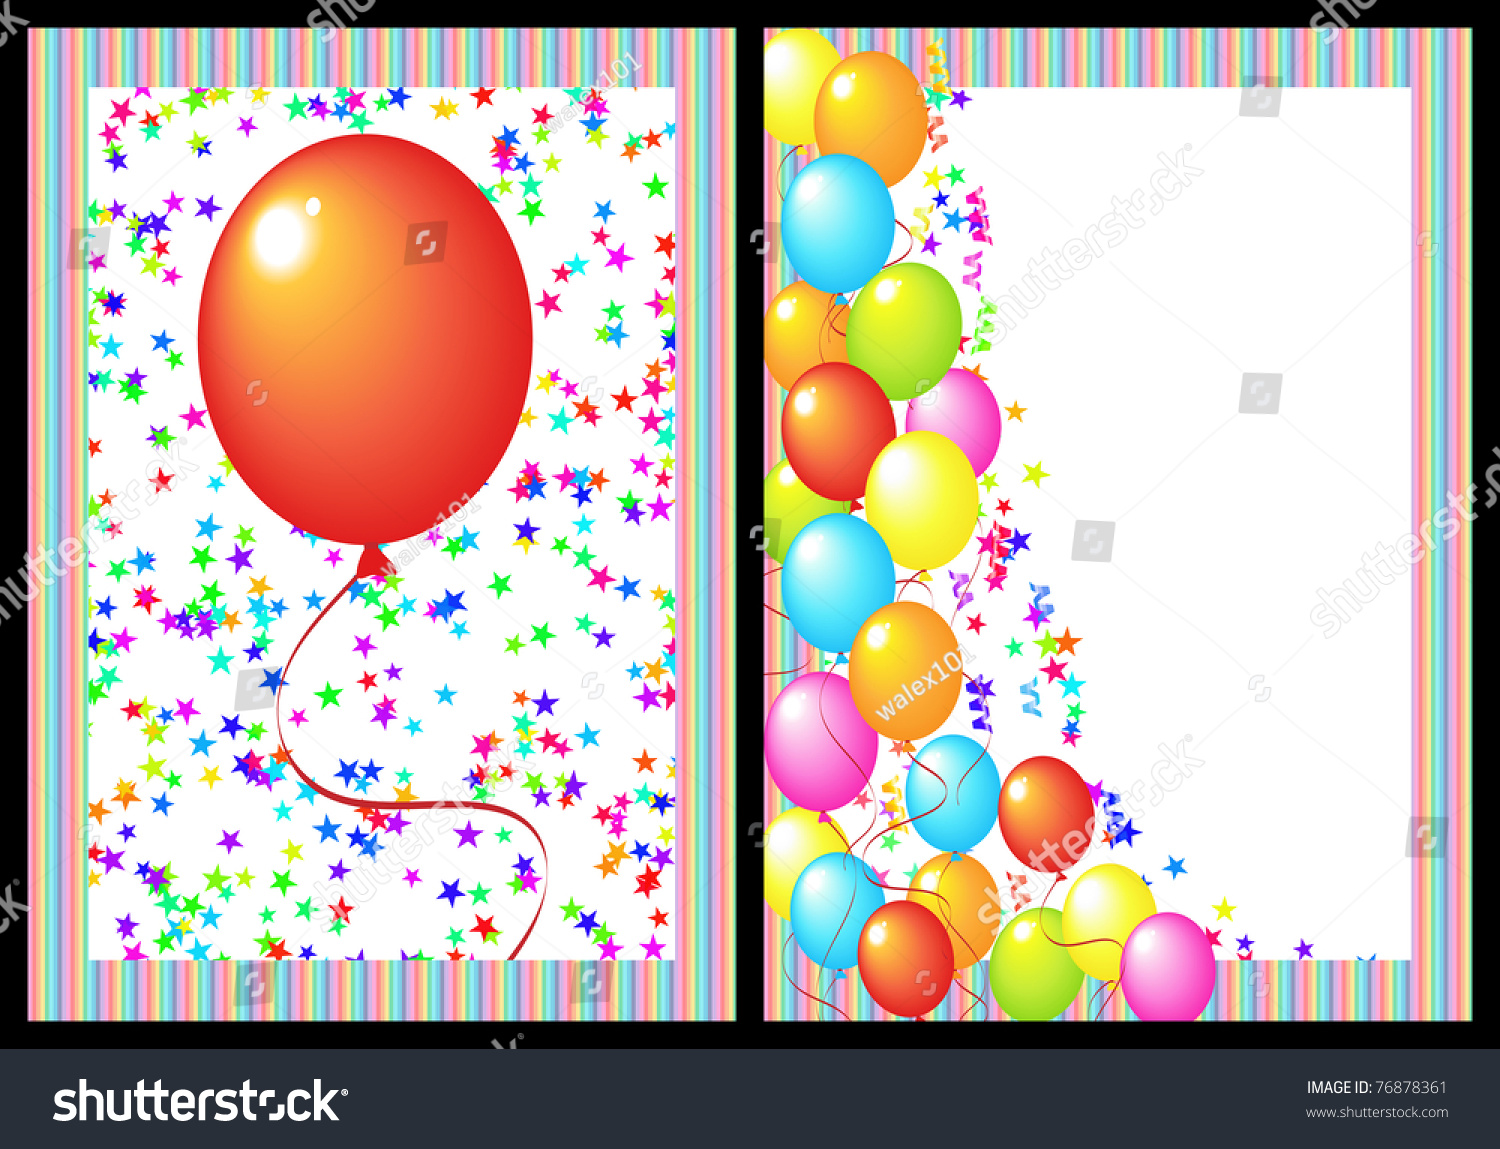 happy birthday add your photo ; stock-photo-happy-birthday-greeting-card-with-balloon-and-star-includes-the-front-and-back-of-the-card-black-76878361